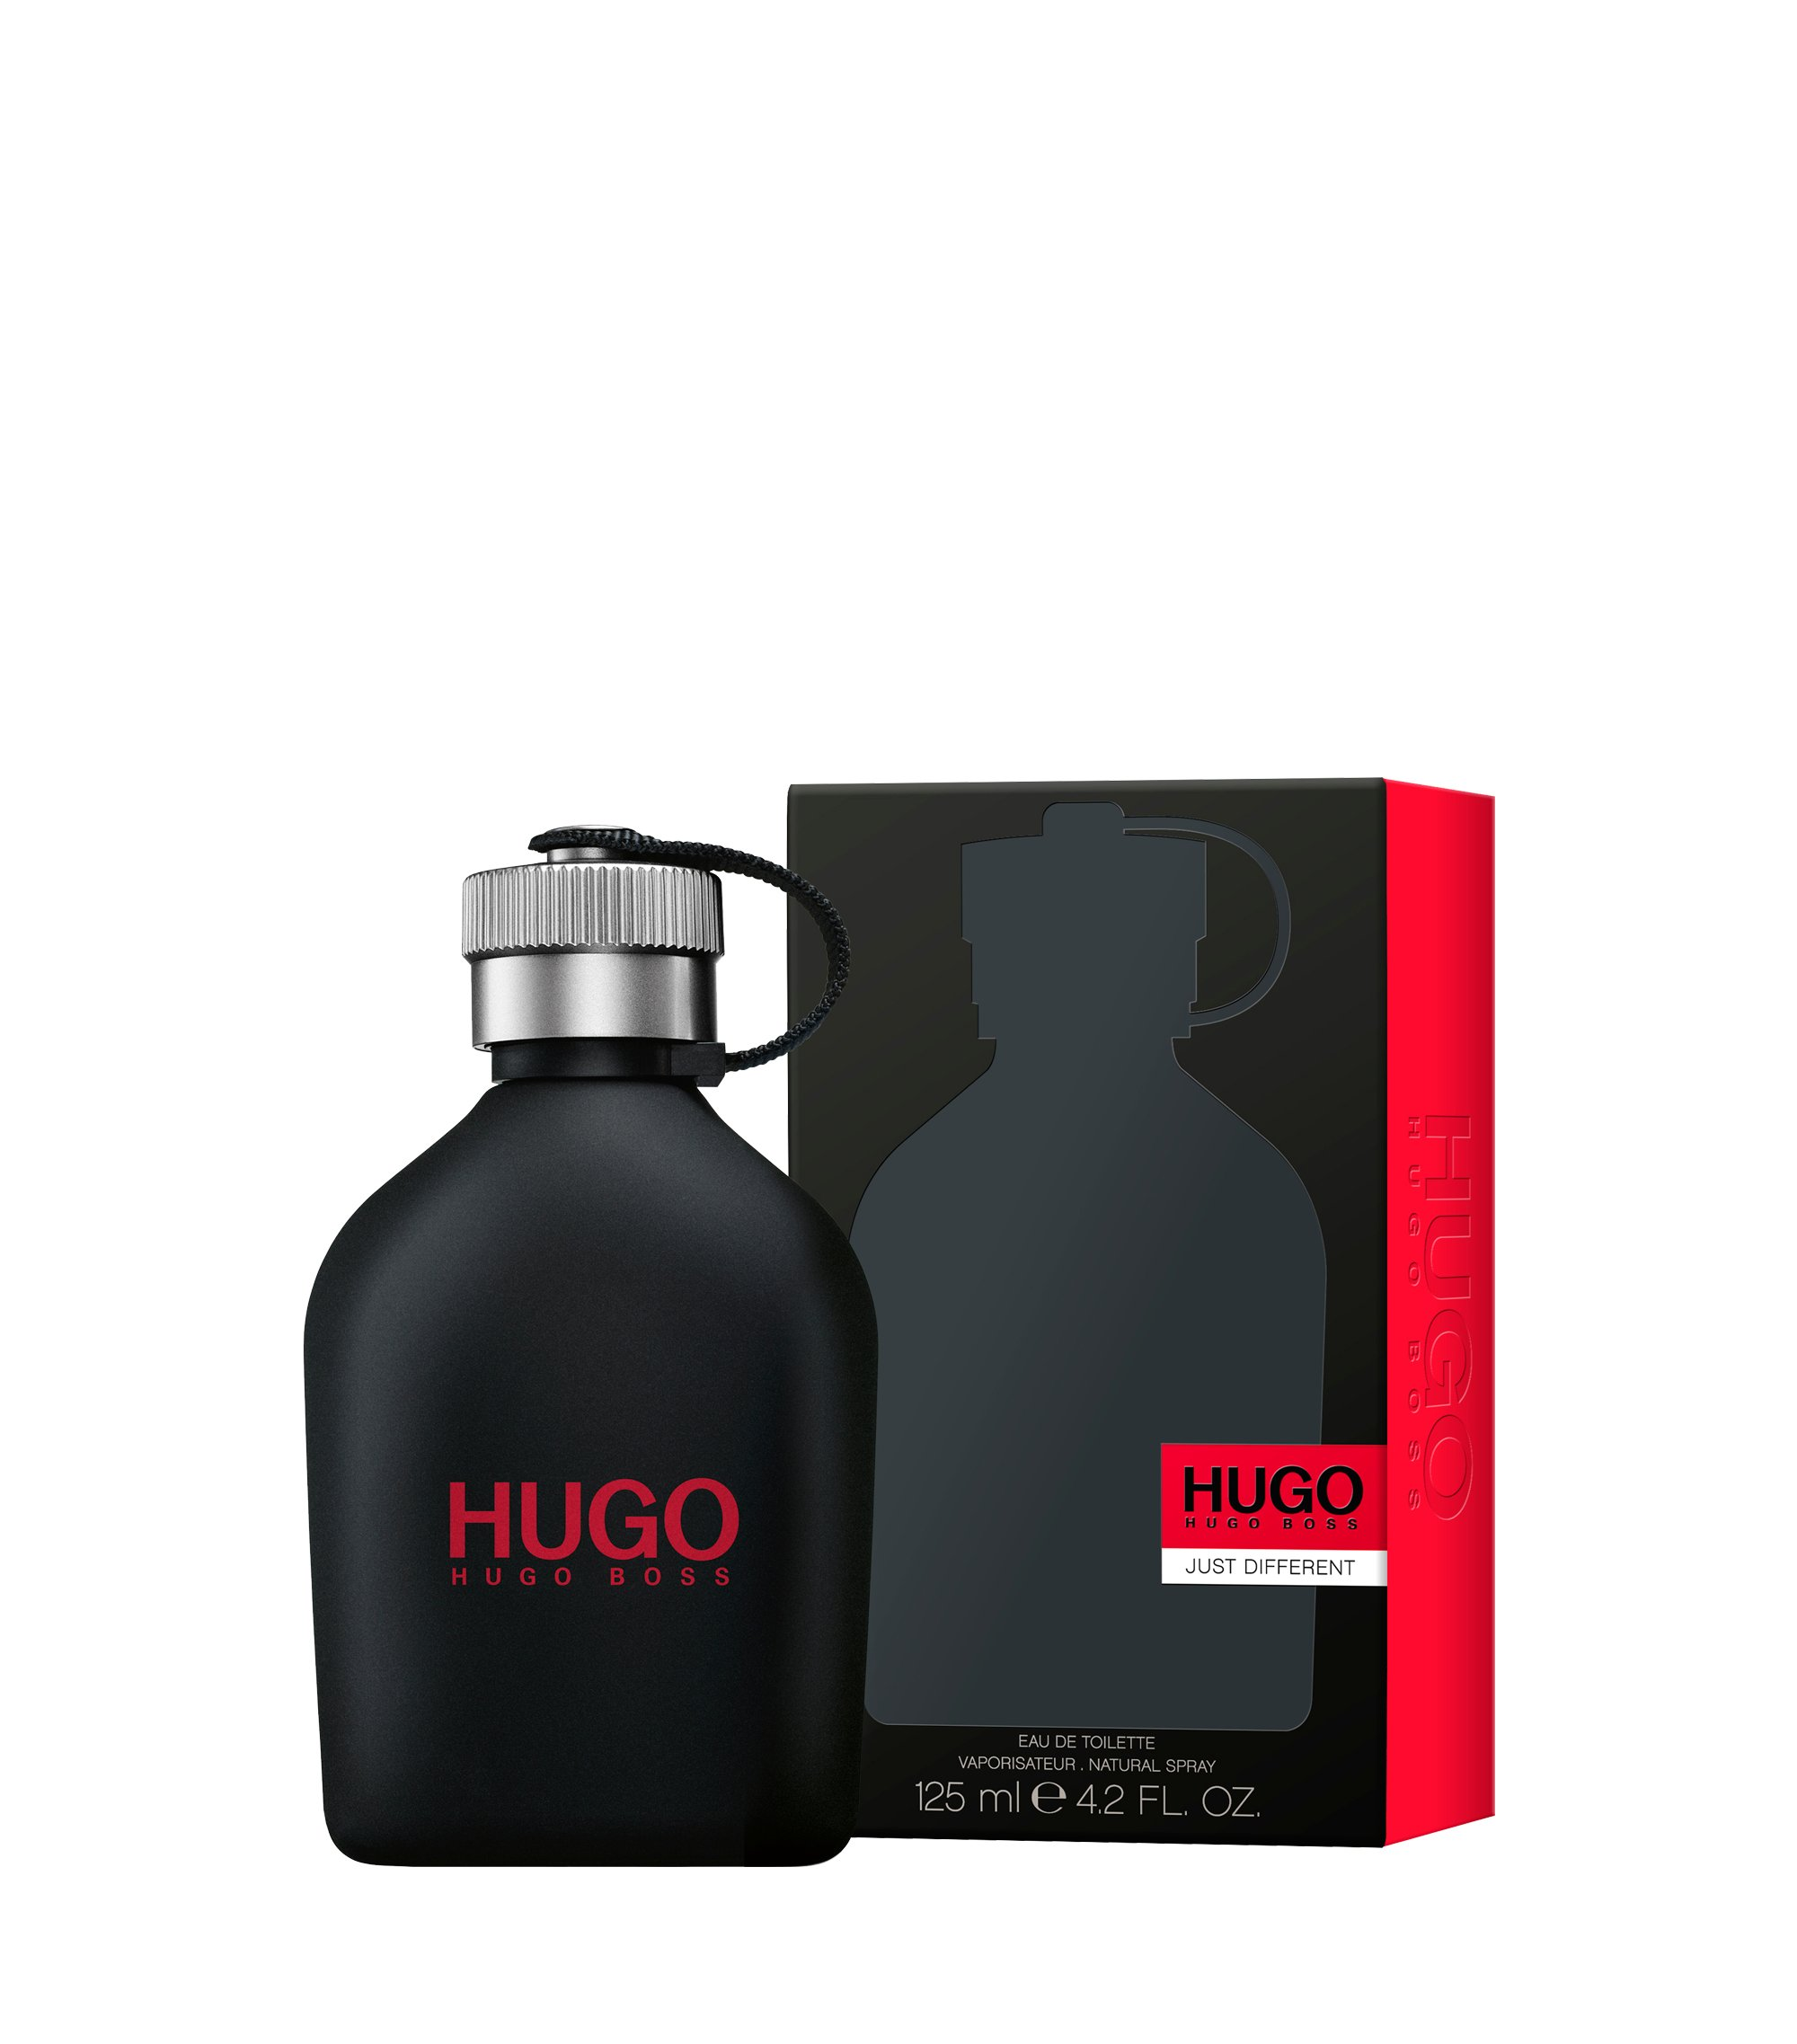 4.2 fl. oz. (125 mL) Eau de Toilette | HUGO Just Different, Assorted-Pre-Pack